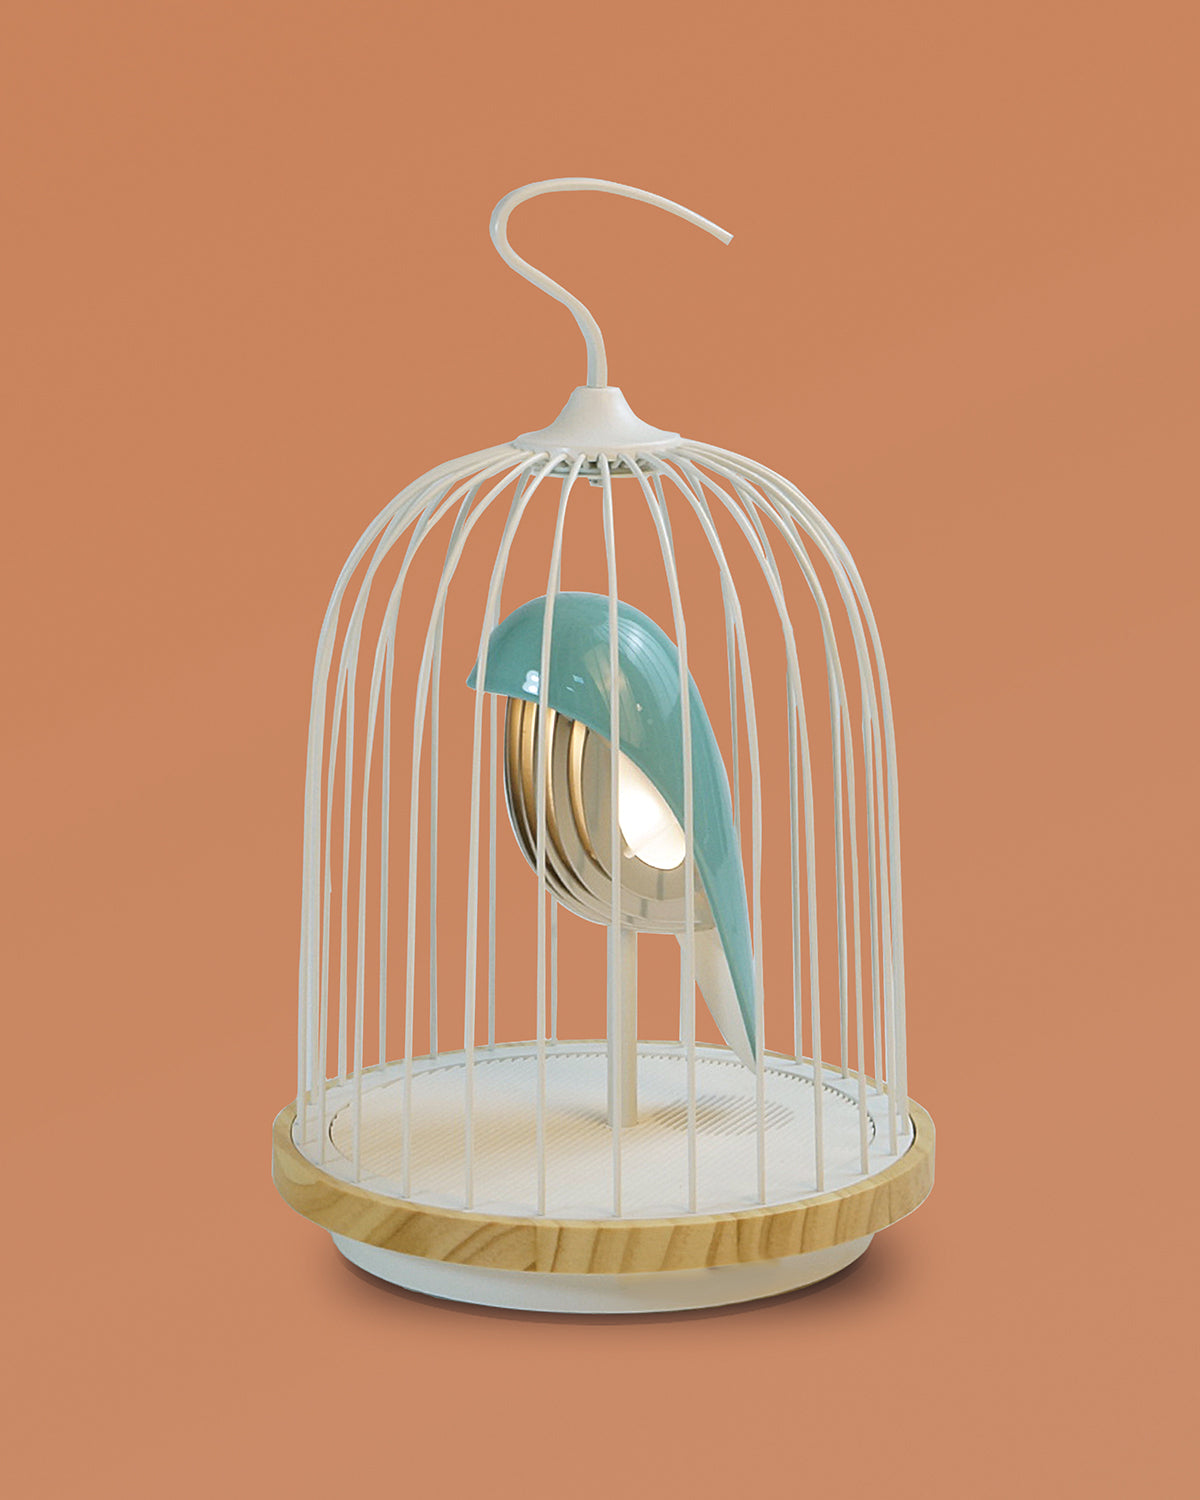 Bluetooth Speaker and Light turquoise color porcelain bird gold accents white cage and white color speaker base